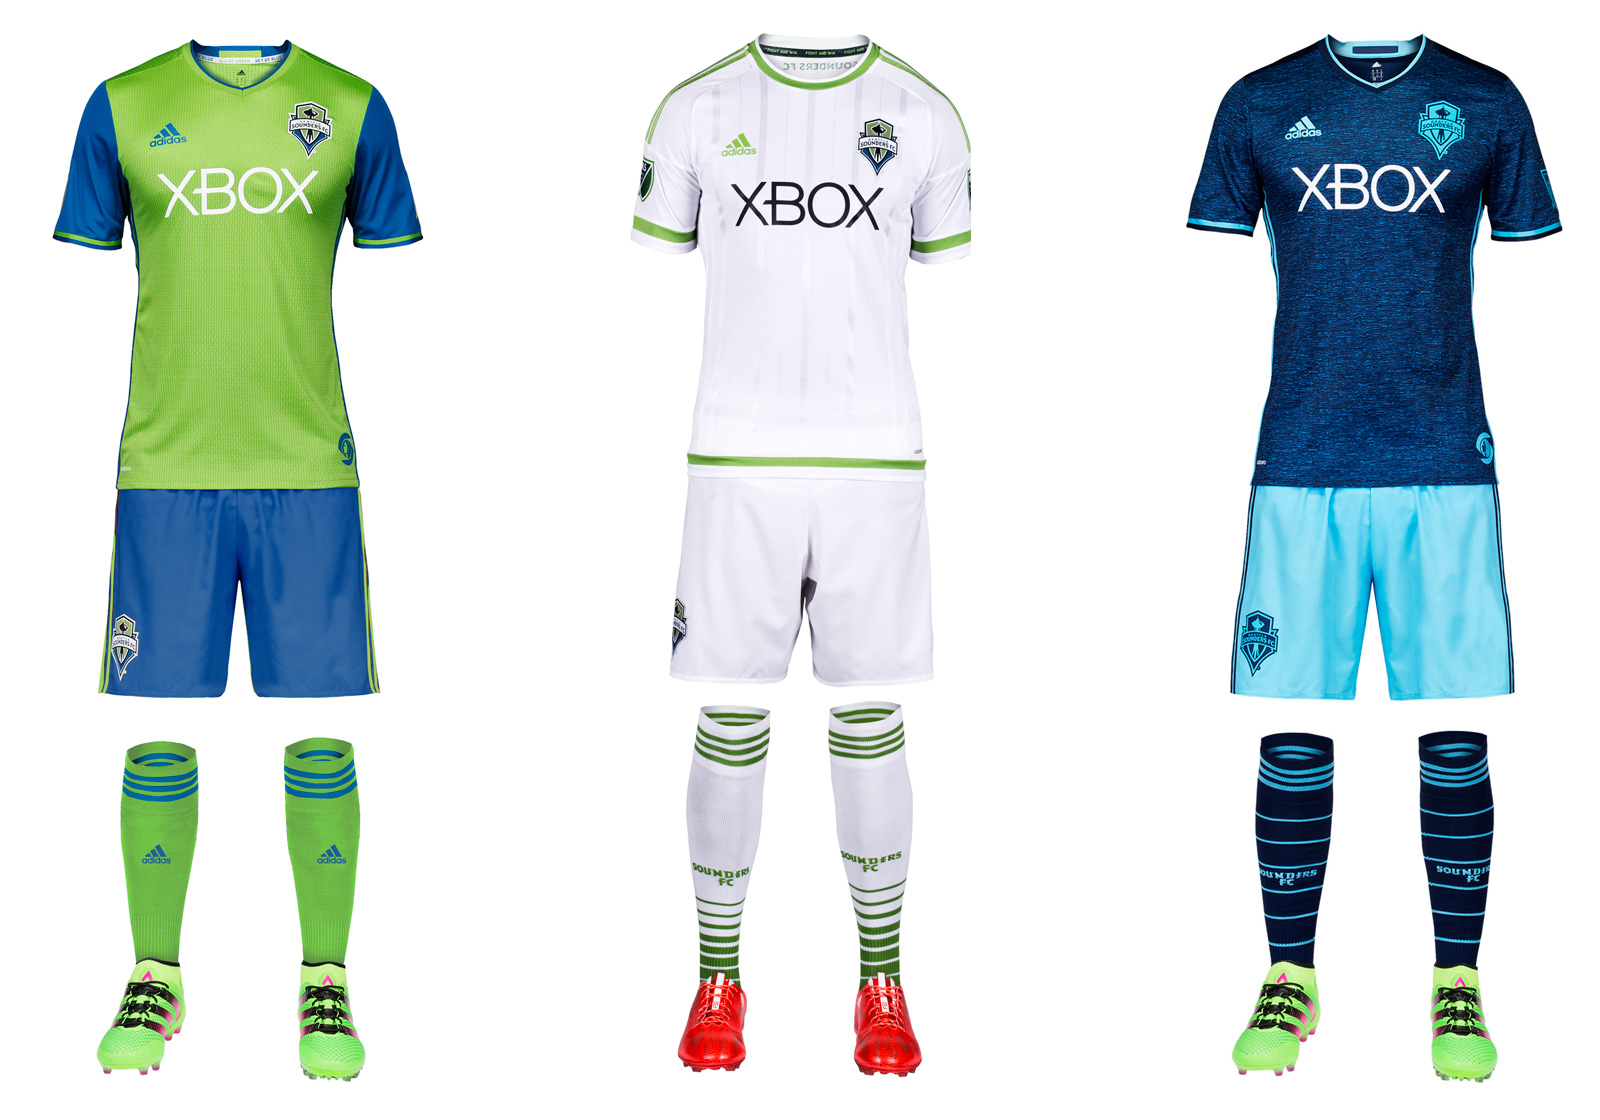 The only club to introduce two uniforms this year, the Sounders will sport a slightly adjusted version of their iconic rave green primary and a new third kit designed to reflect the colors of Puget Sound. The home set now features blue sleeves and an 'SS' pattern on the body of the jersey. Seattle may continue the odd tradition of swapping the shorts and socks when wearing the primary on the road. It returns to cyan (and shades of darker blue) on the new third kit, which has a nice Cascadia feel. Hopefully, its arrival means the Sounders will wear the silly all-white secondary as infrequently as possible.